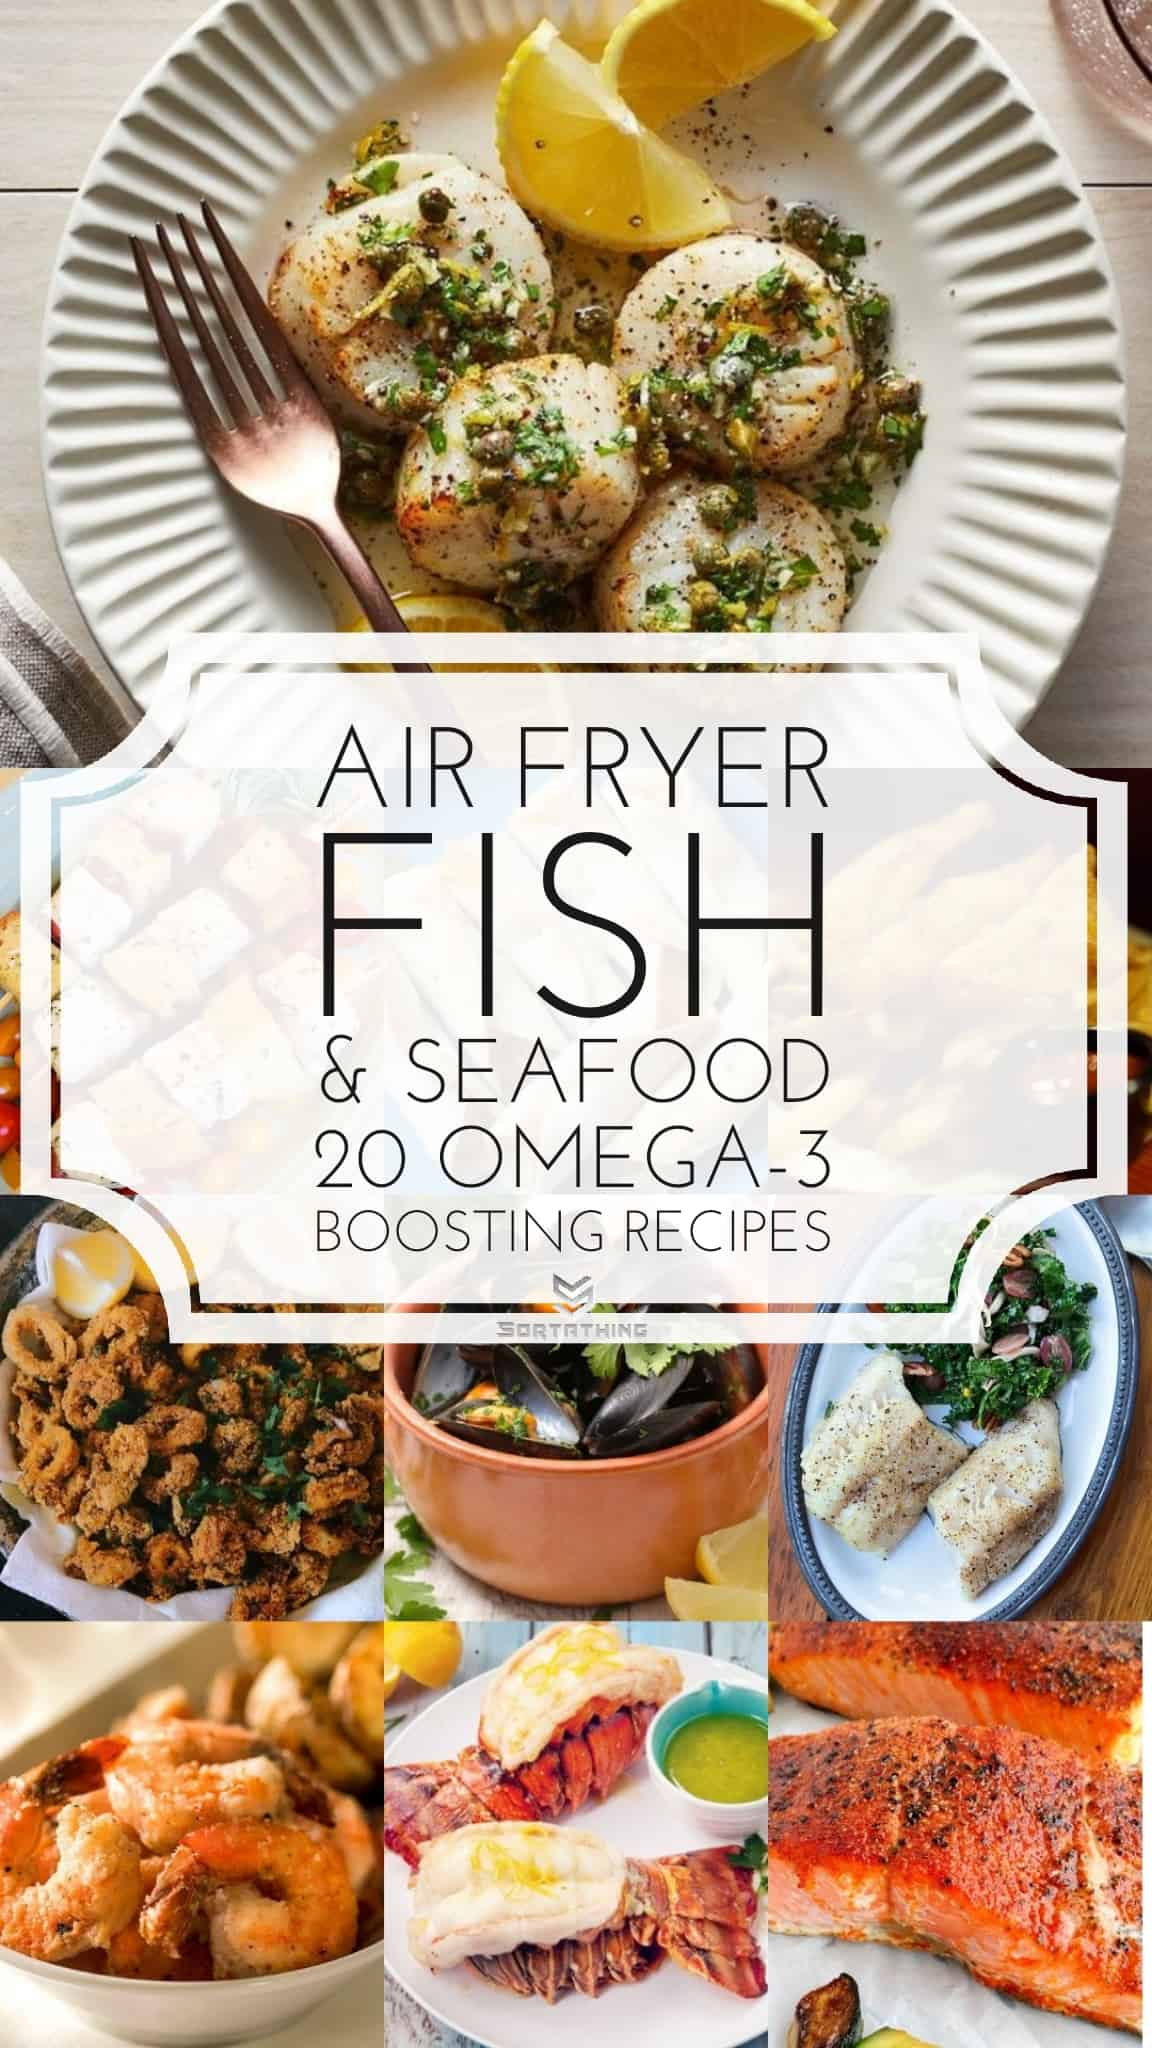 Air Fryer Recipes Fish & Seafood - Omega-3 Booster